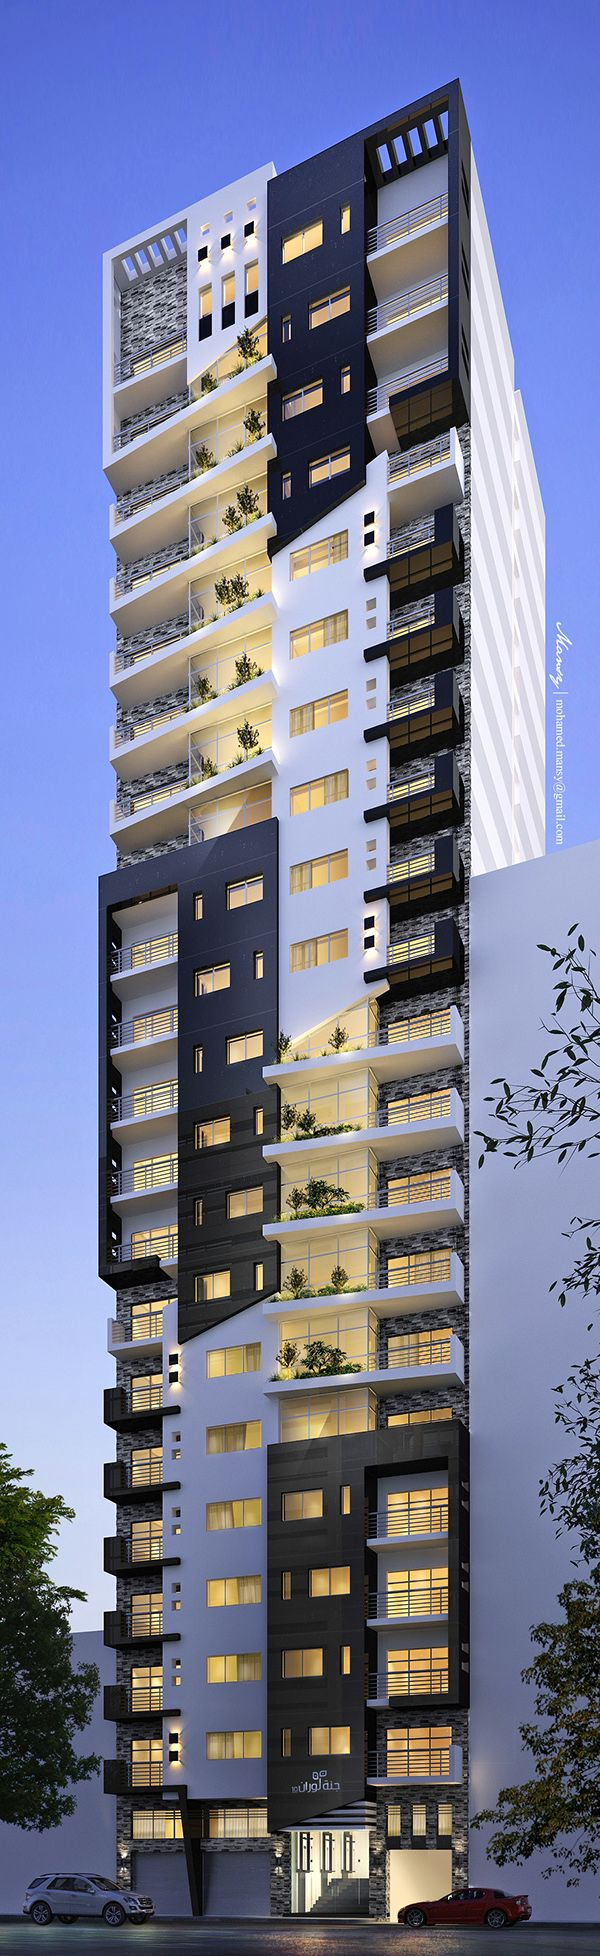 By serg sova at. Apartment clipart high rise building